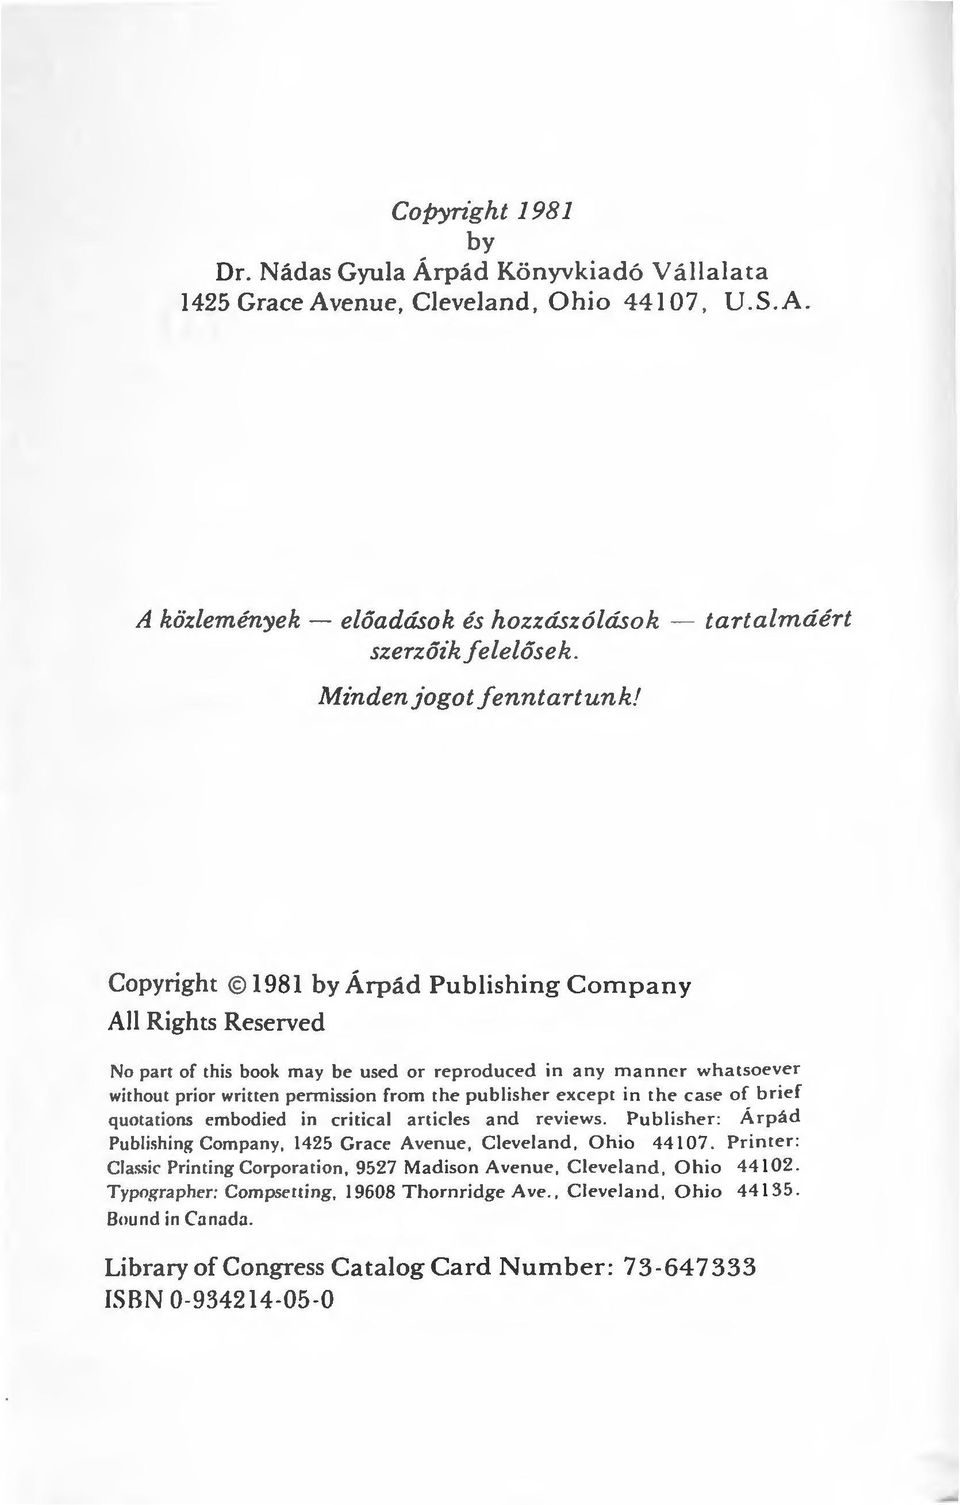 Copyright 1981 by Árpád Publishing Campany Ali Rights Reserved No part of this book may be used or reproduced in any manner whatsacver witl1out prior written permission from the publisher except in